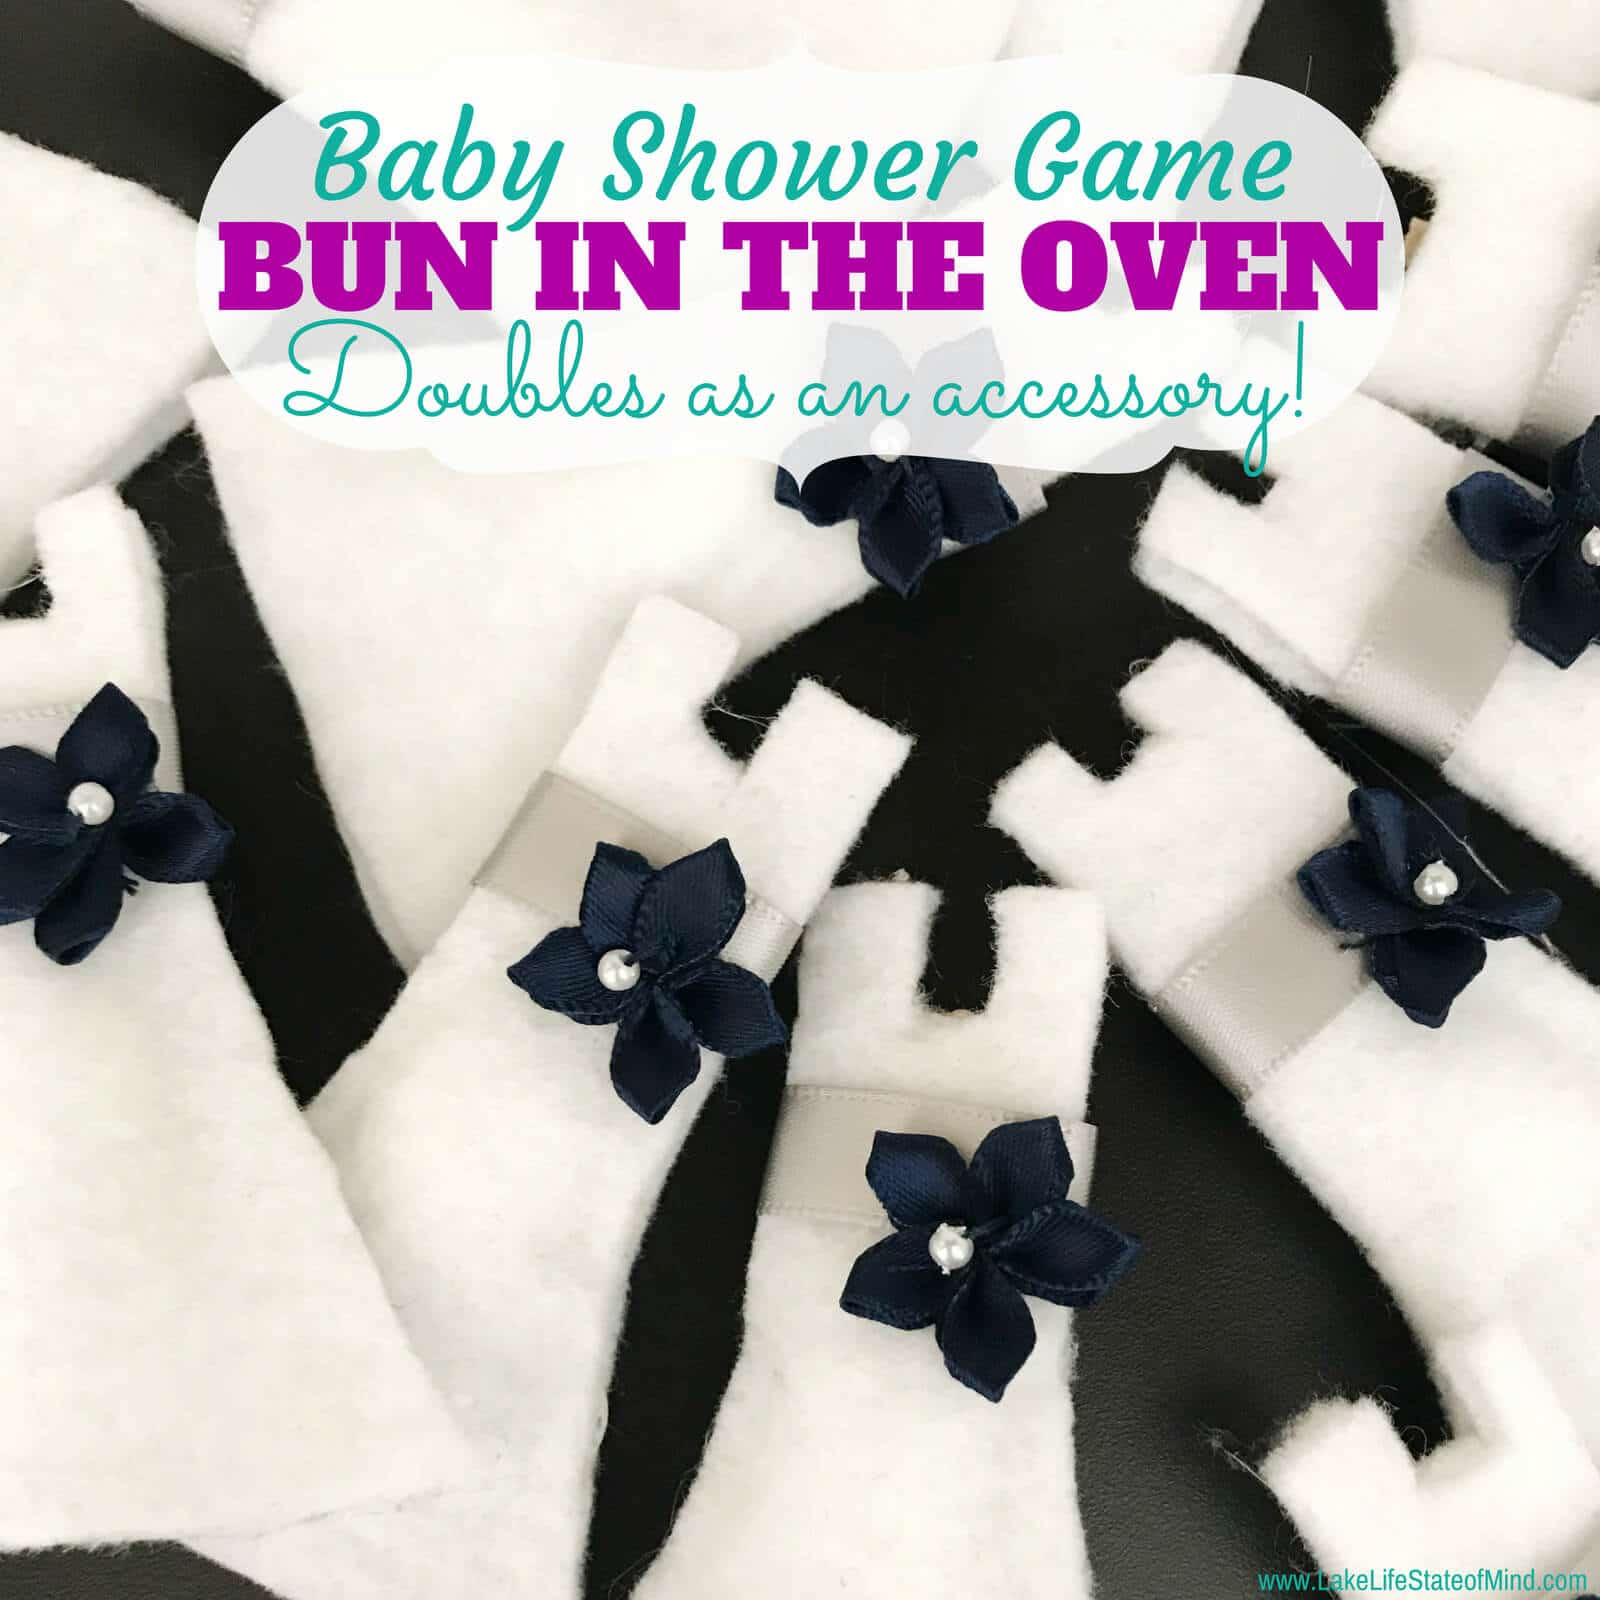 There's a Bun in the Oven | Baby Shower Game